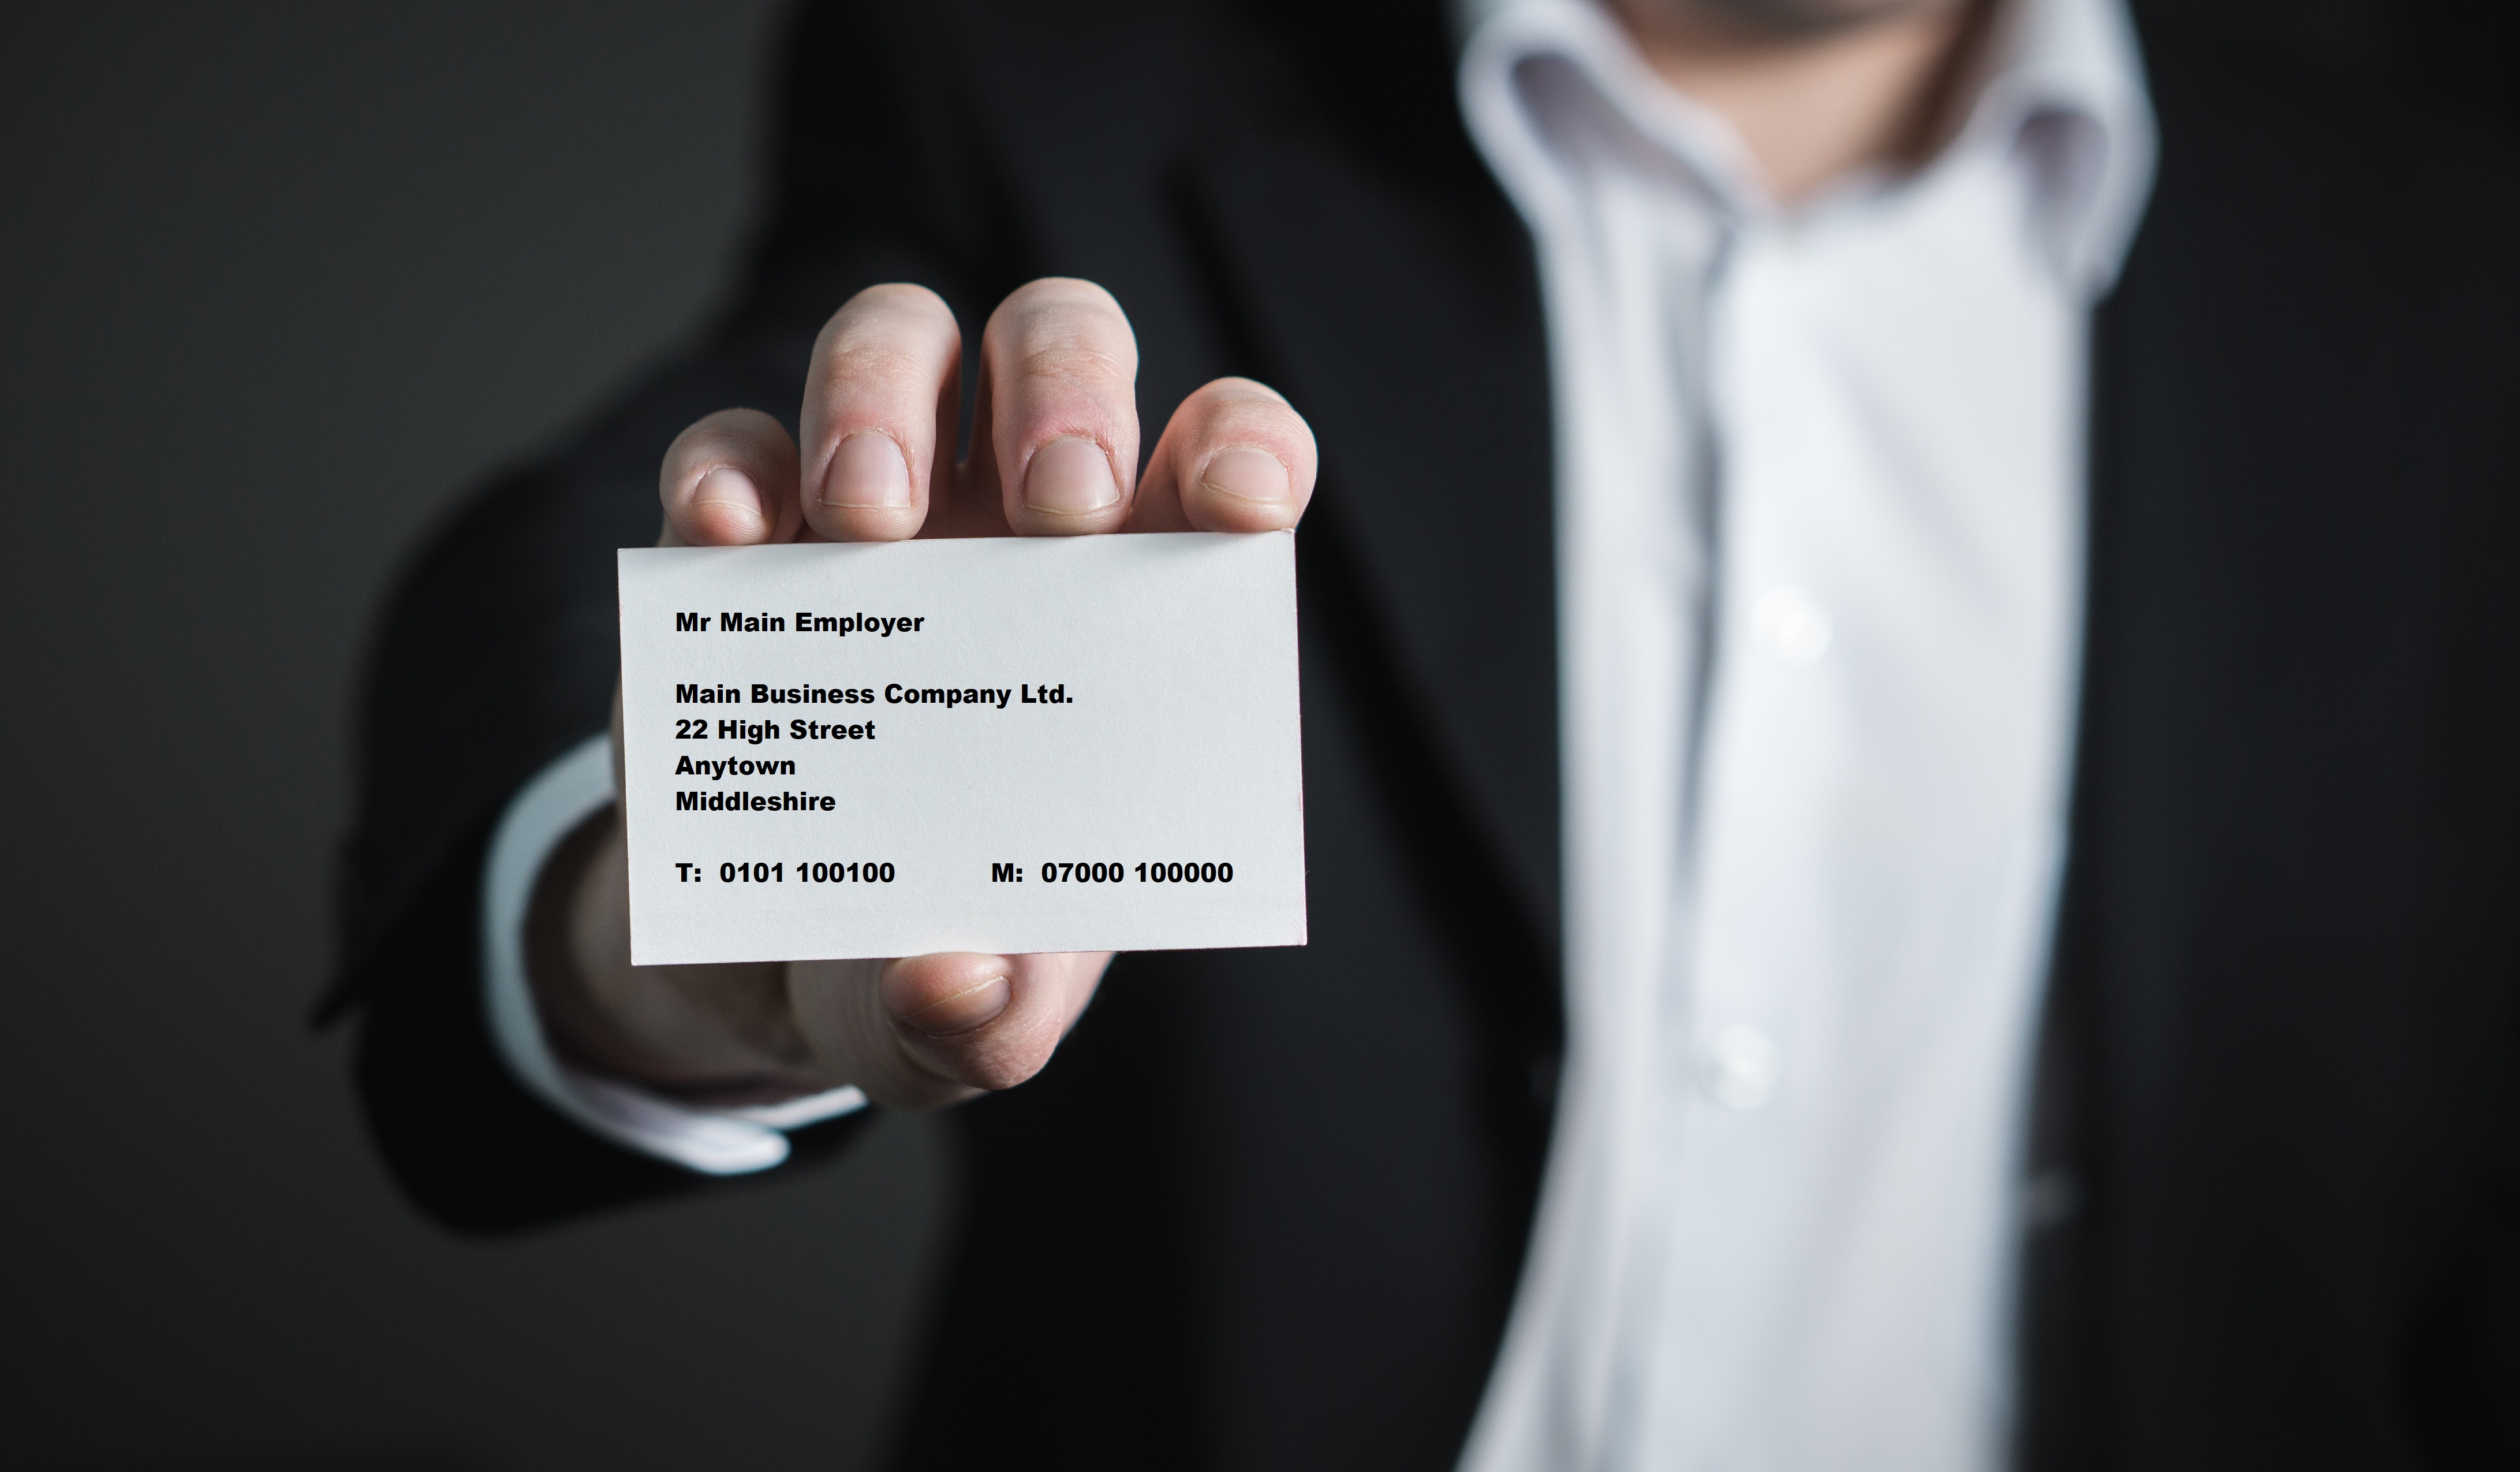 Employer showing his business card